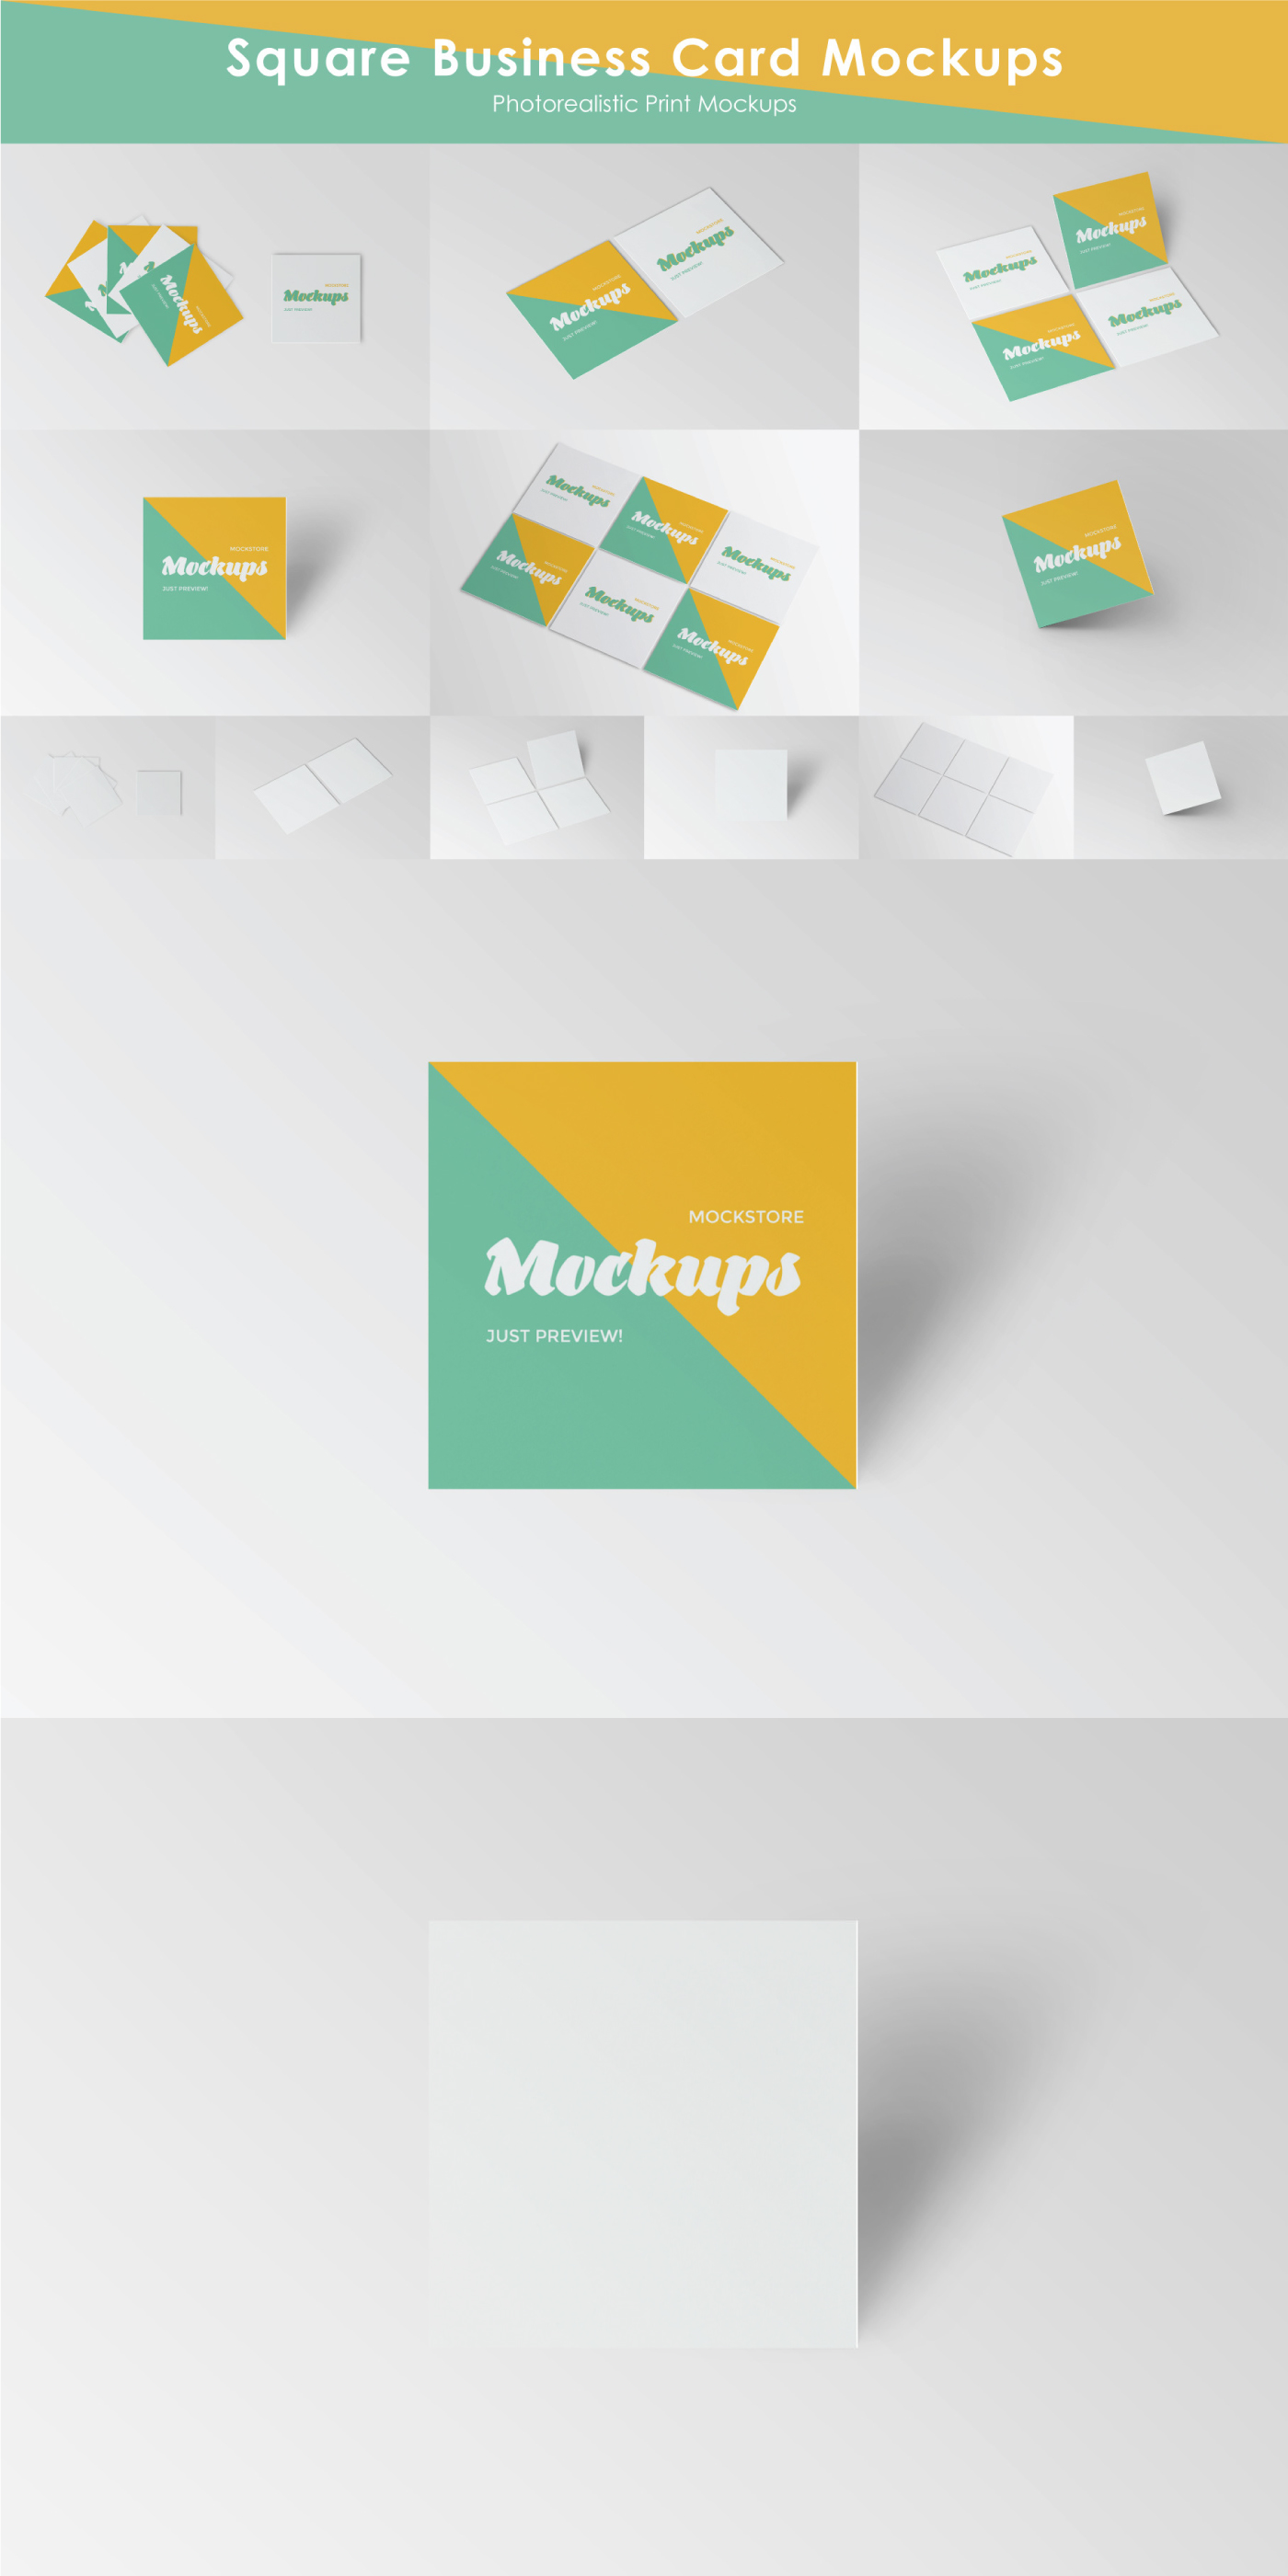 Free Square Business Card Mockup Pixel Surplus Resources For